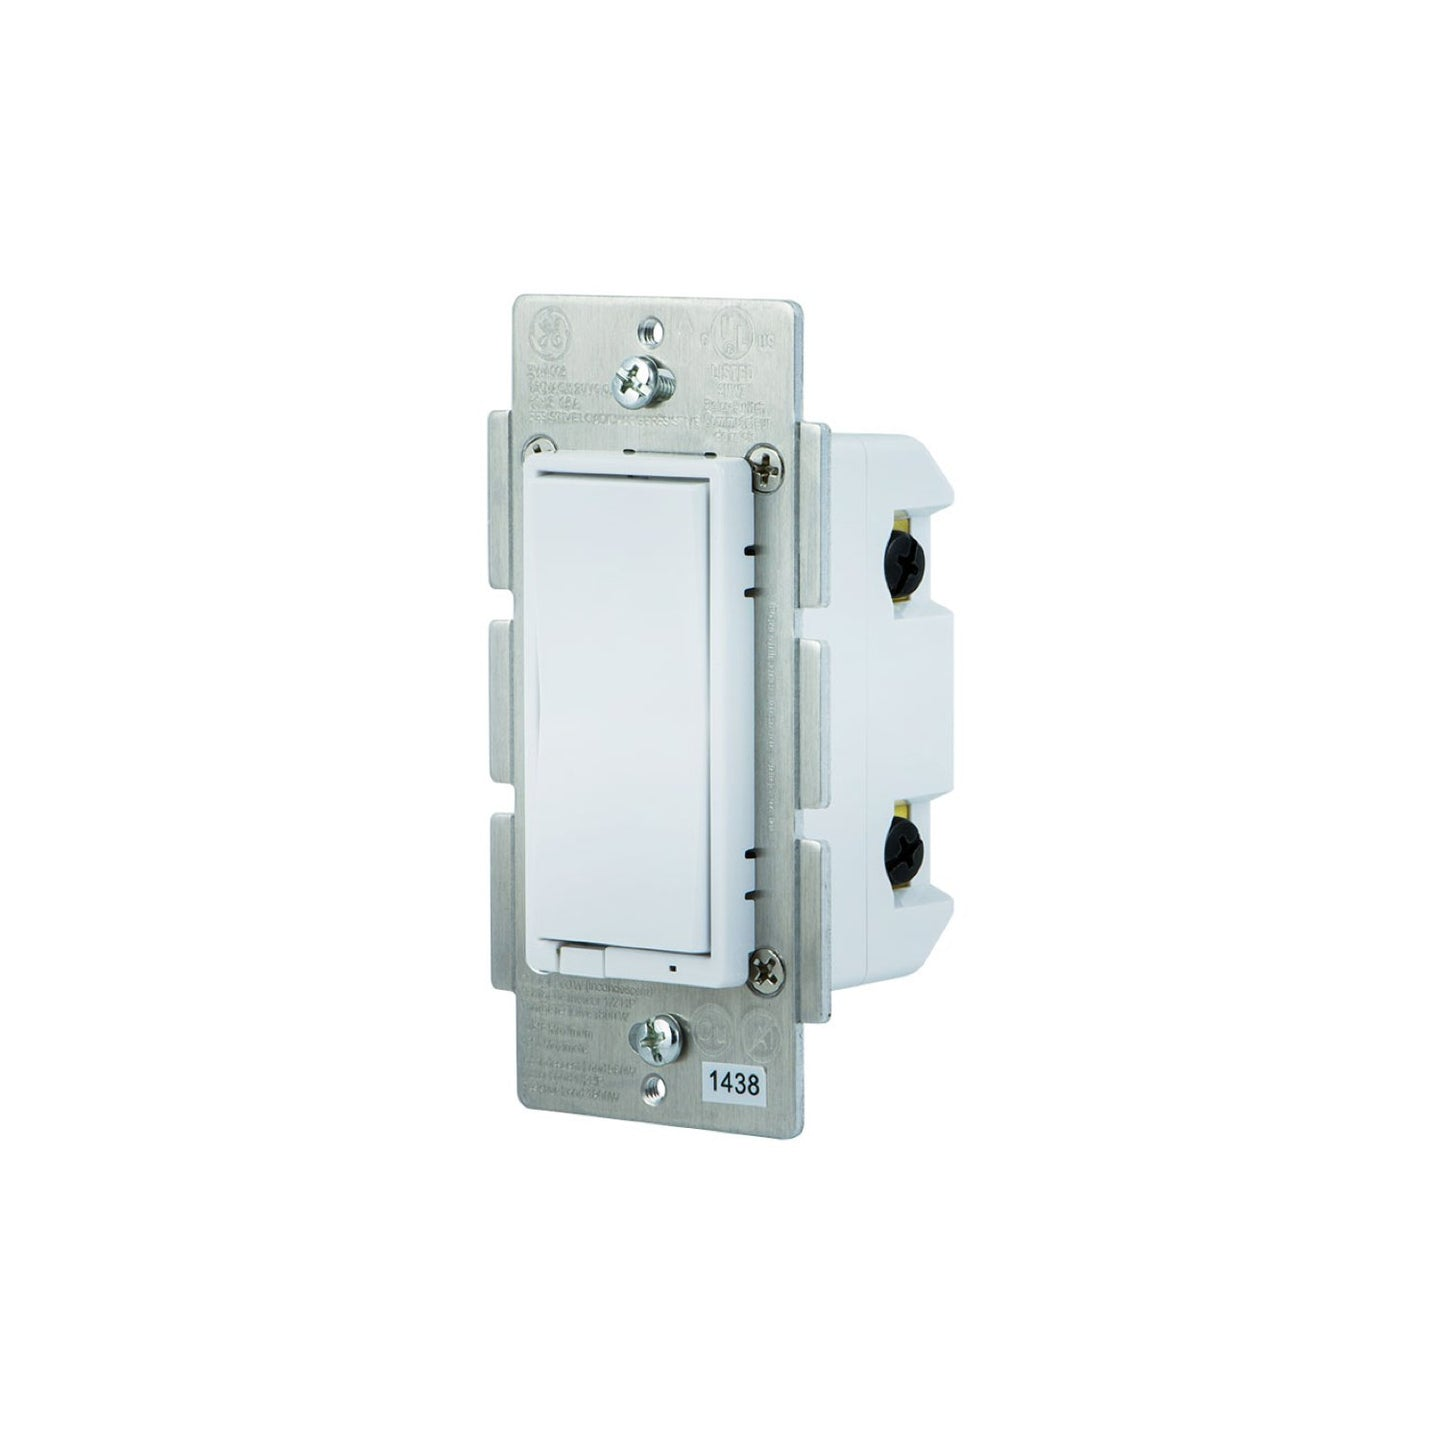 GE In-Wall Paddle Switch (for Works with Ring Alarm Security System)